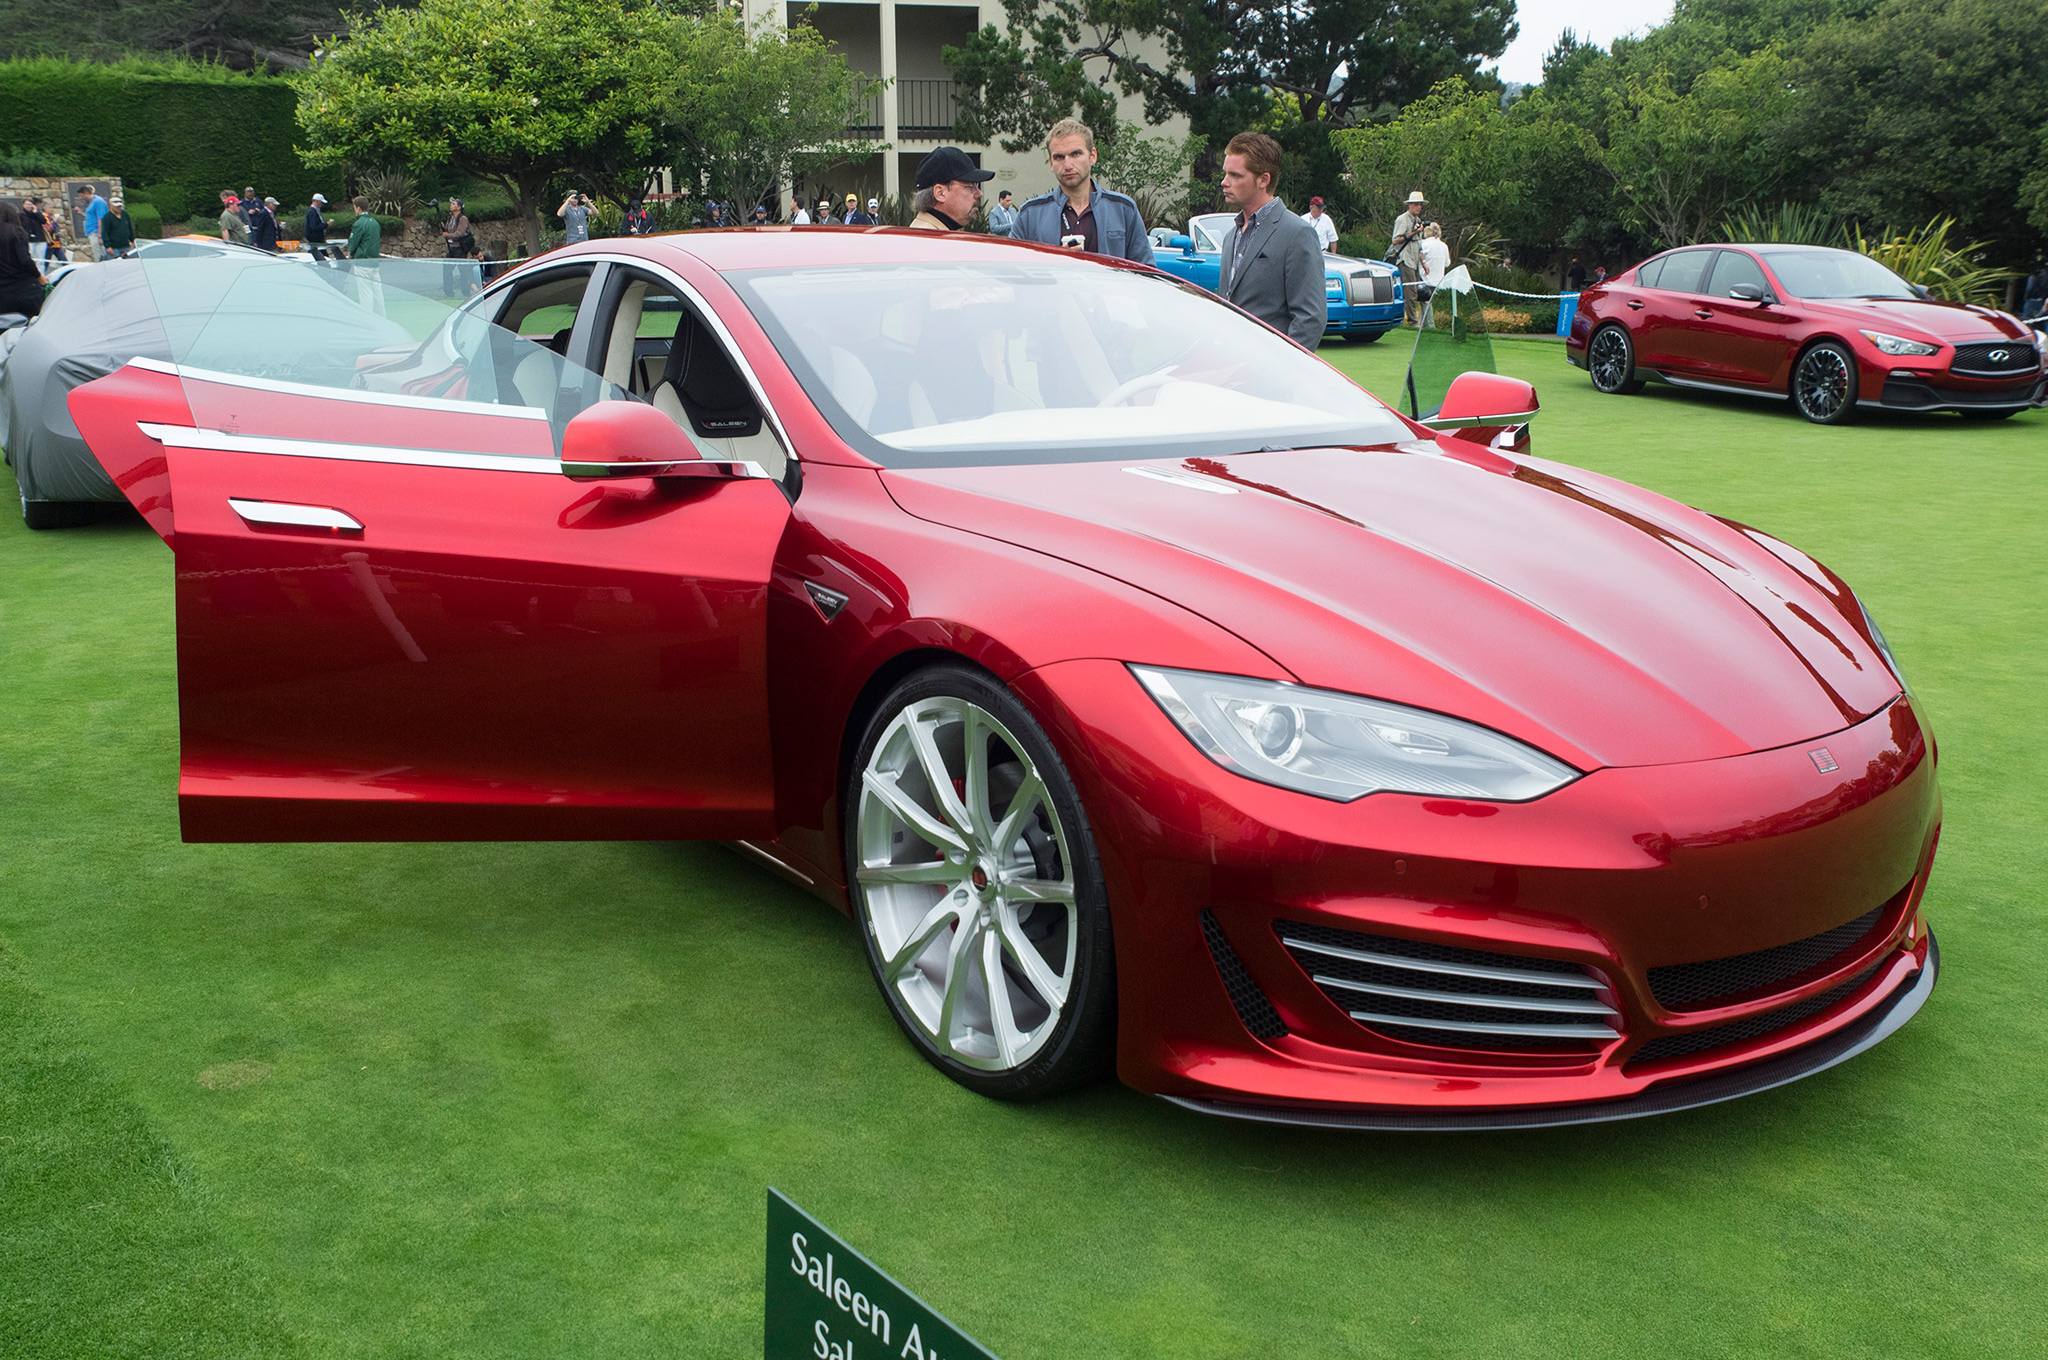 Coolest Cars of the 2014 Pebble Beach Concept Lawn